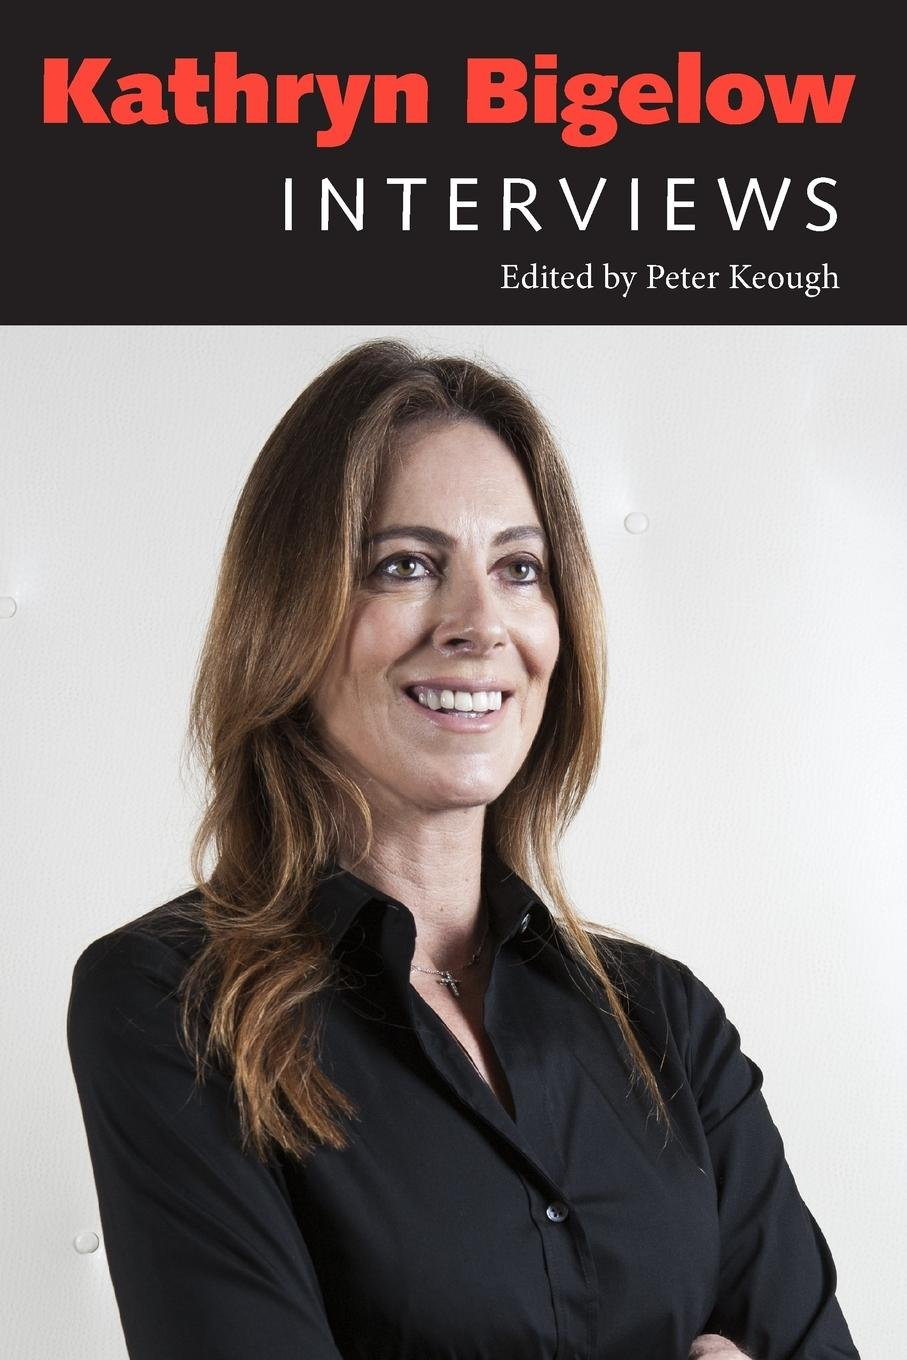 Kathryn Bigelow: Interviews (Conversations with Filmmakers Series): Peter  Keough: 9781496804587: Amazon.com: Books